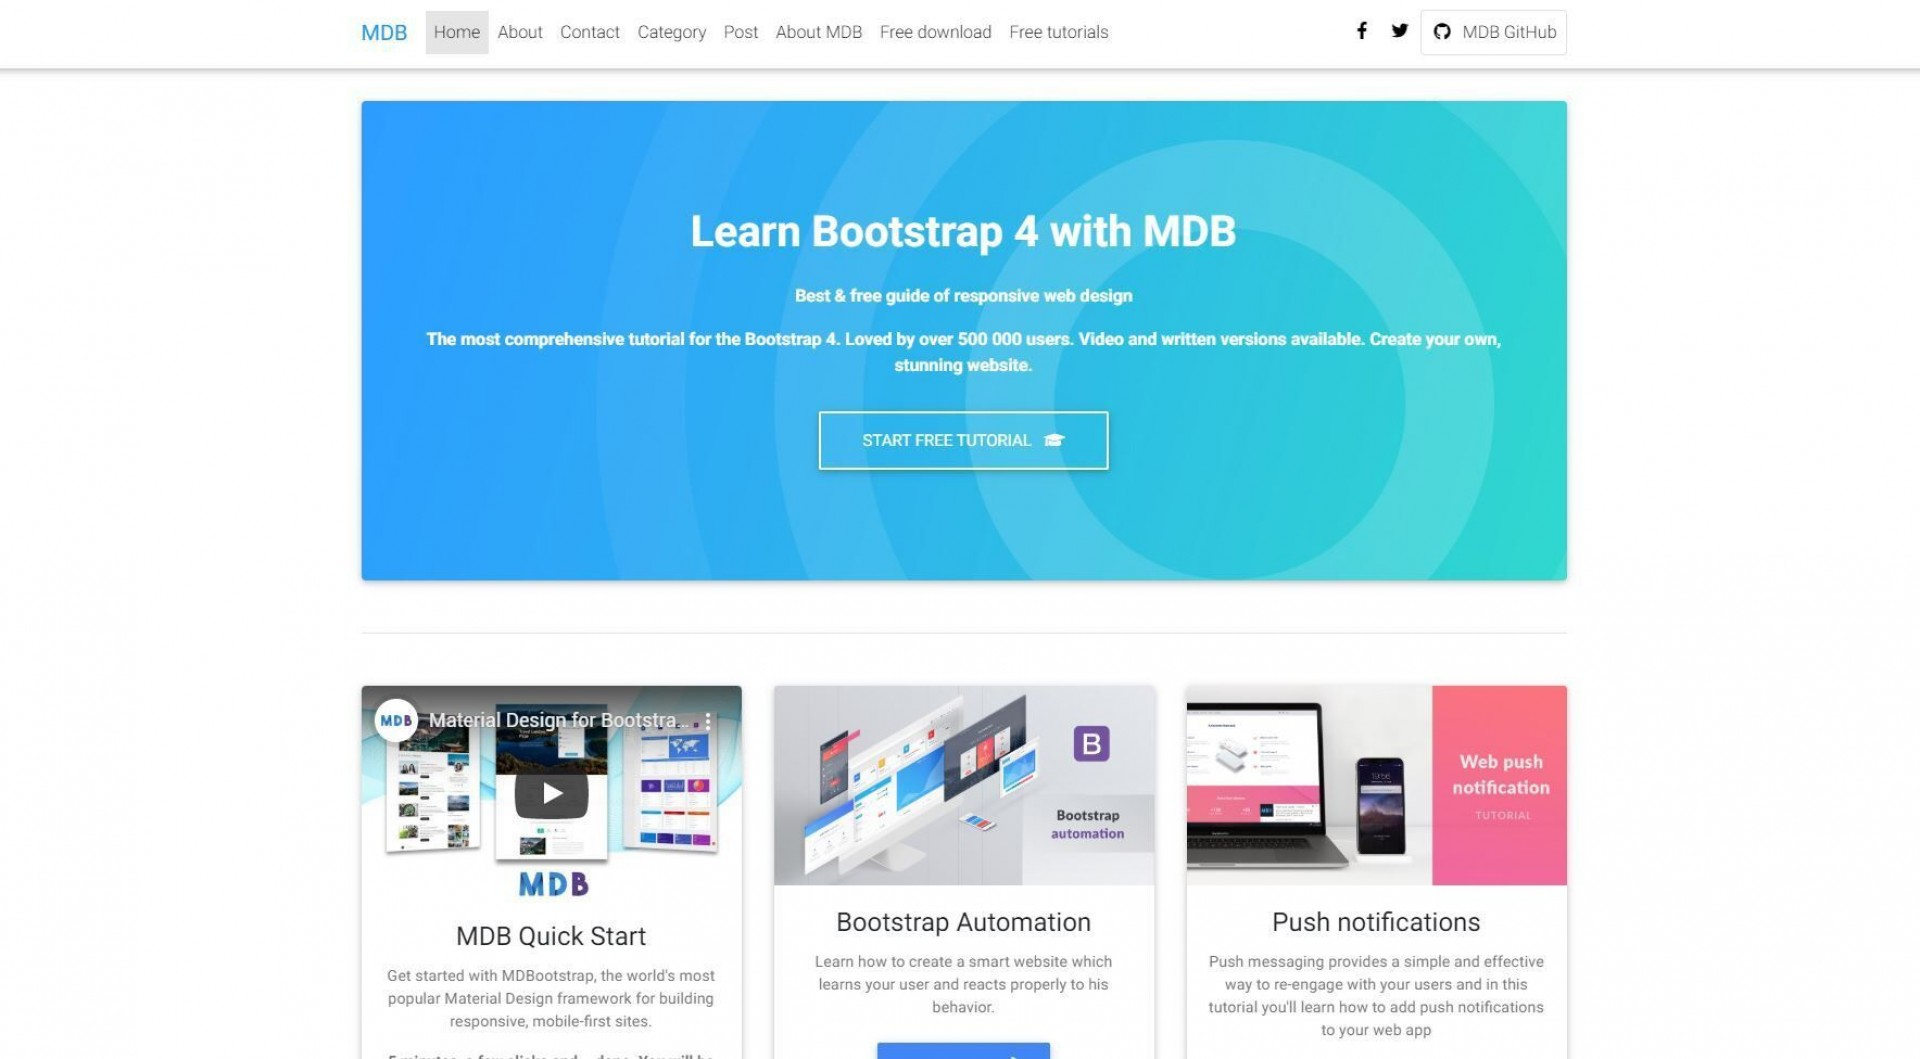 006 Awesome Web Page Design Template In Asp Net Idea  Asp.net1920